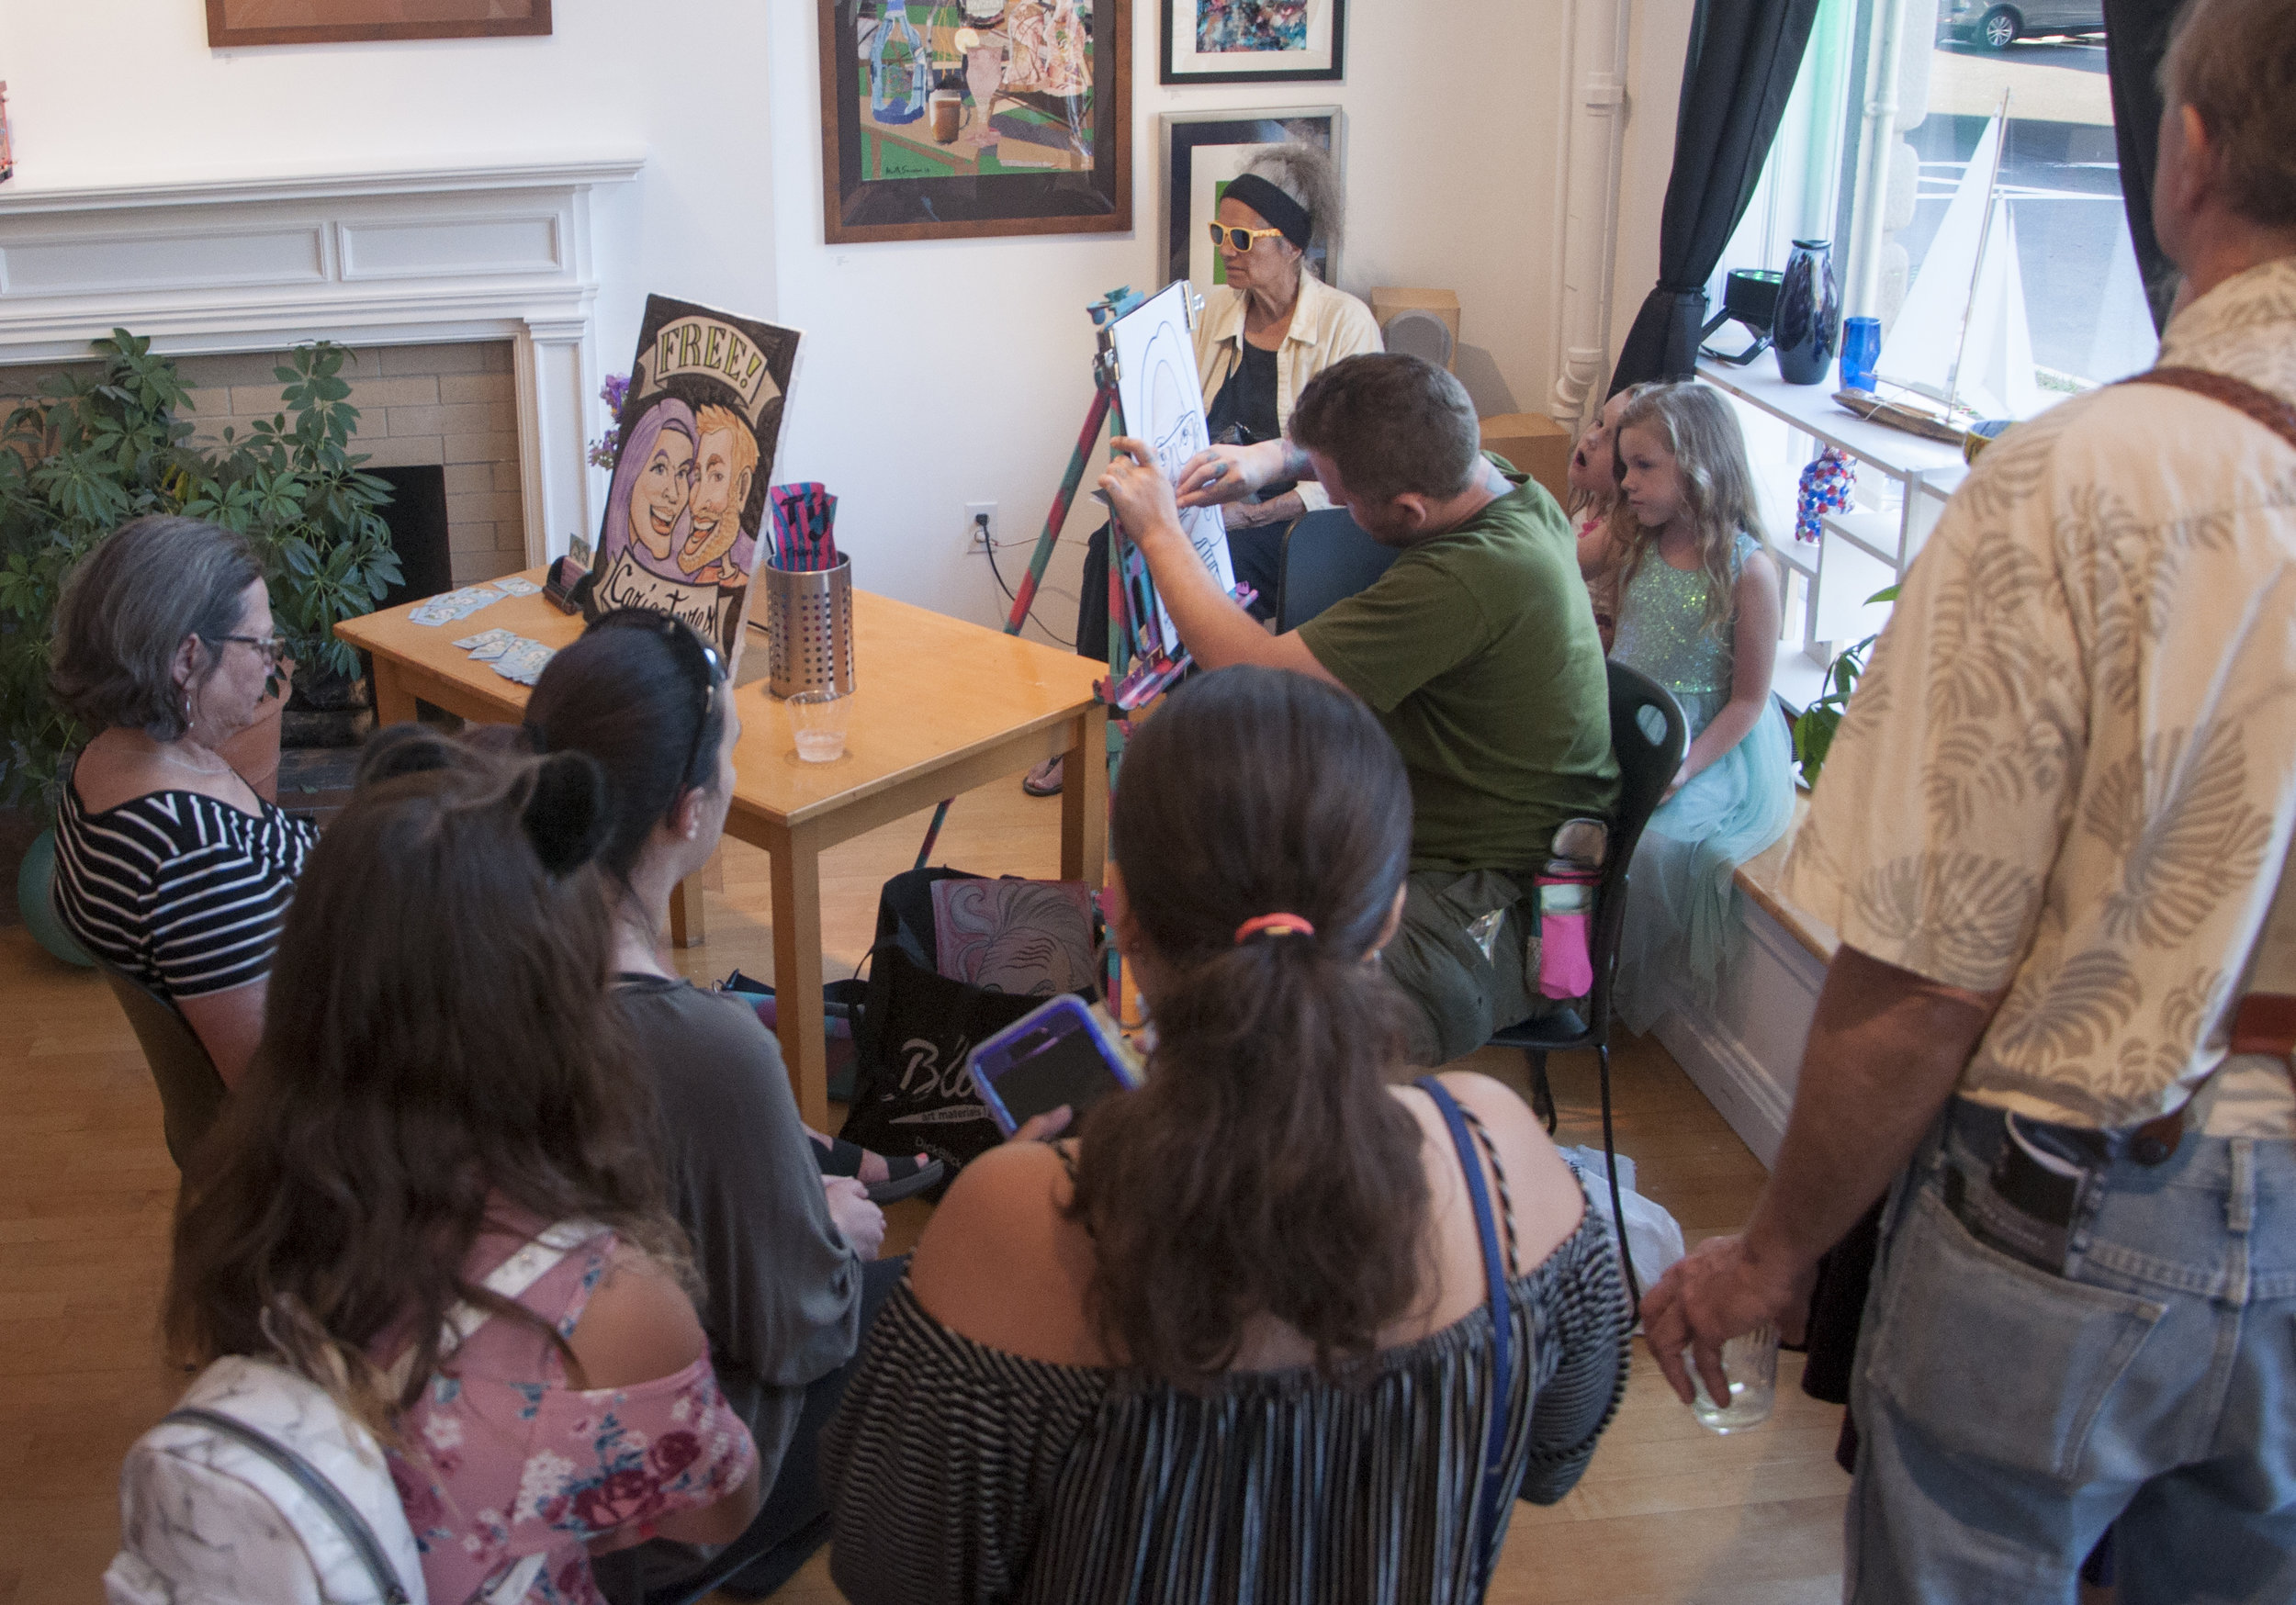 August 2, 2019 Higher Purpose Opening Reception. Matt Bernson Caricature Artist. Photo credit Vacant Skye Photography.